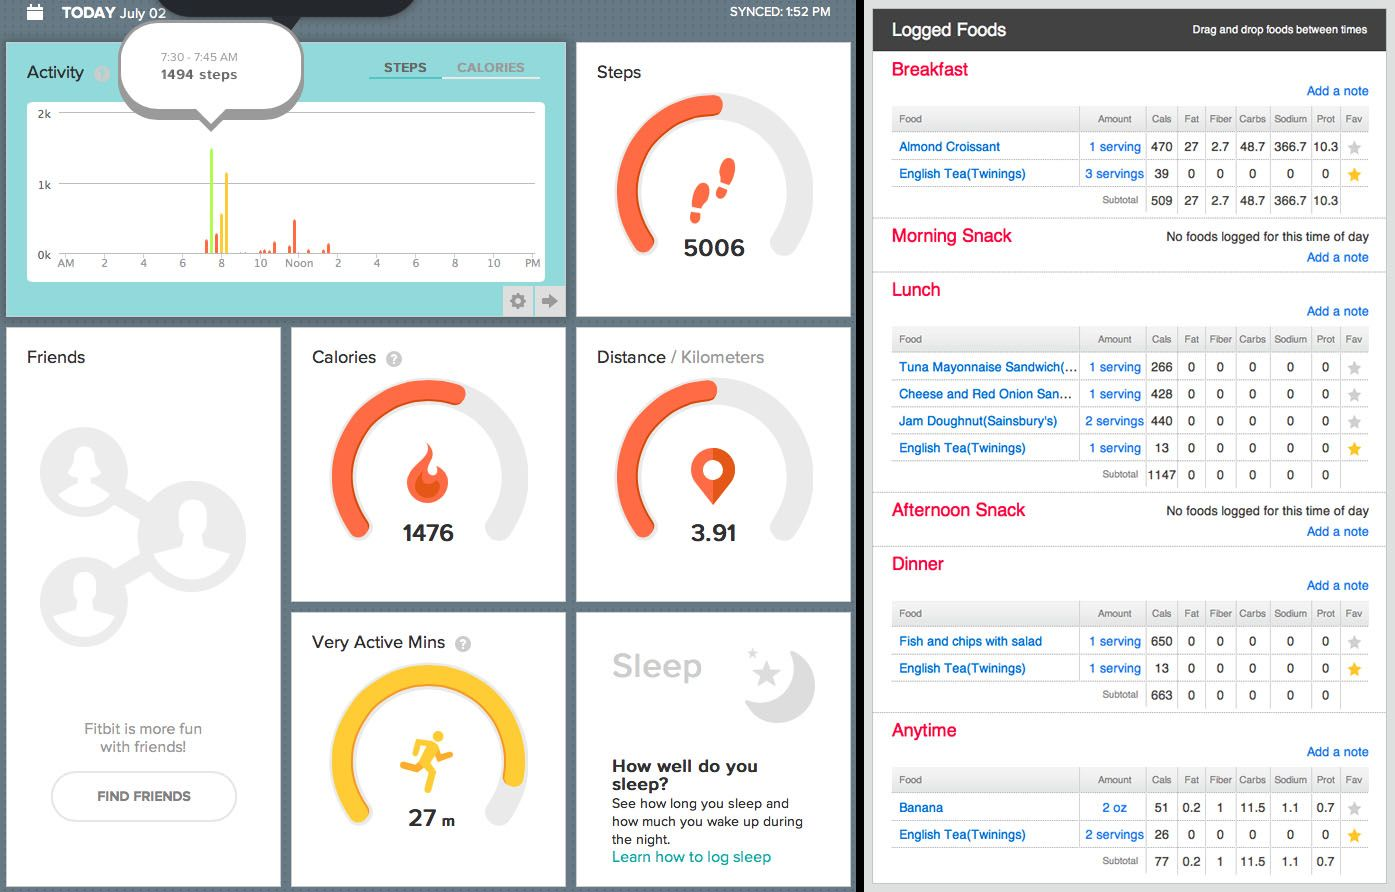 Exercise and Nutrition data dashboard by Fitbit Flex